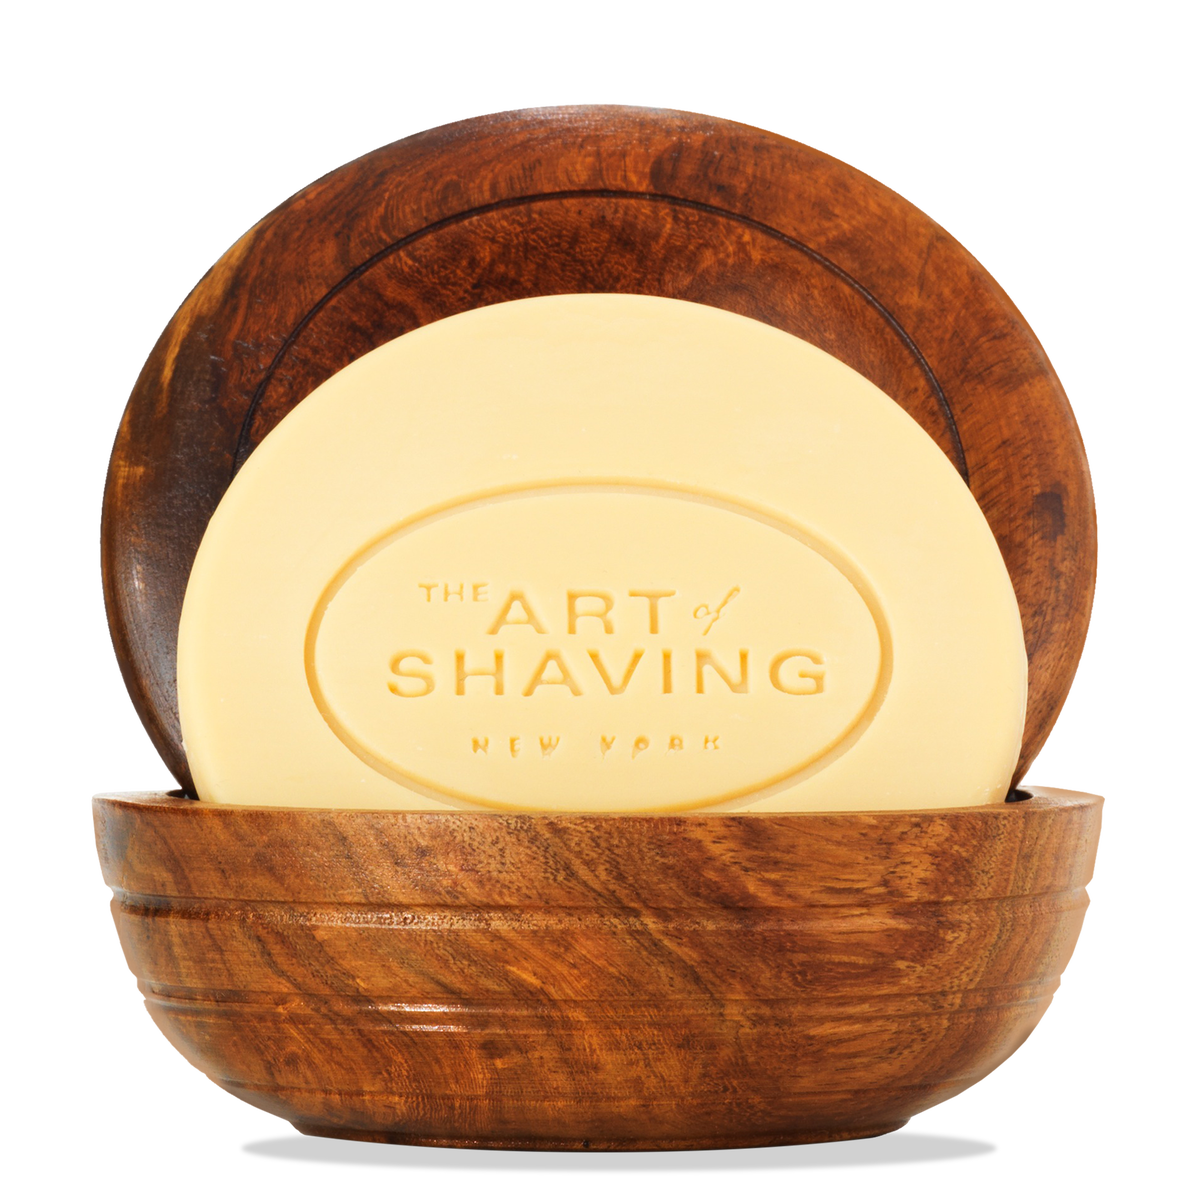 art-of-shaving-shaving-cream-and-bowl